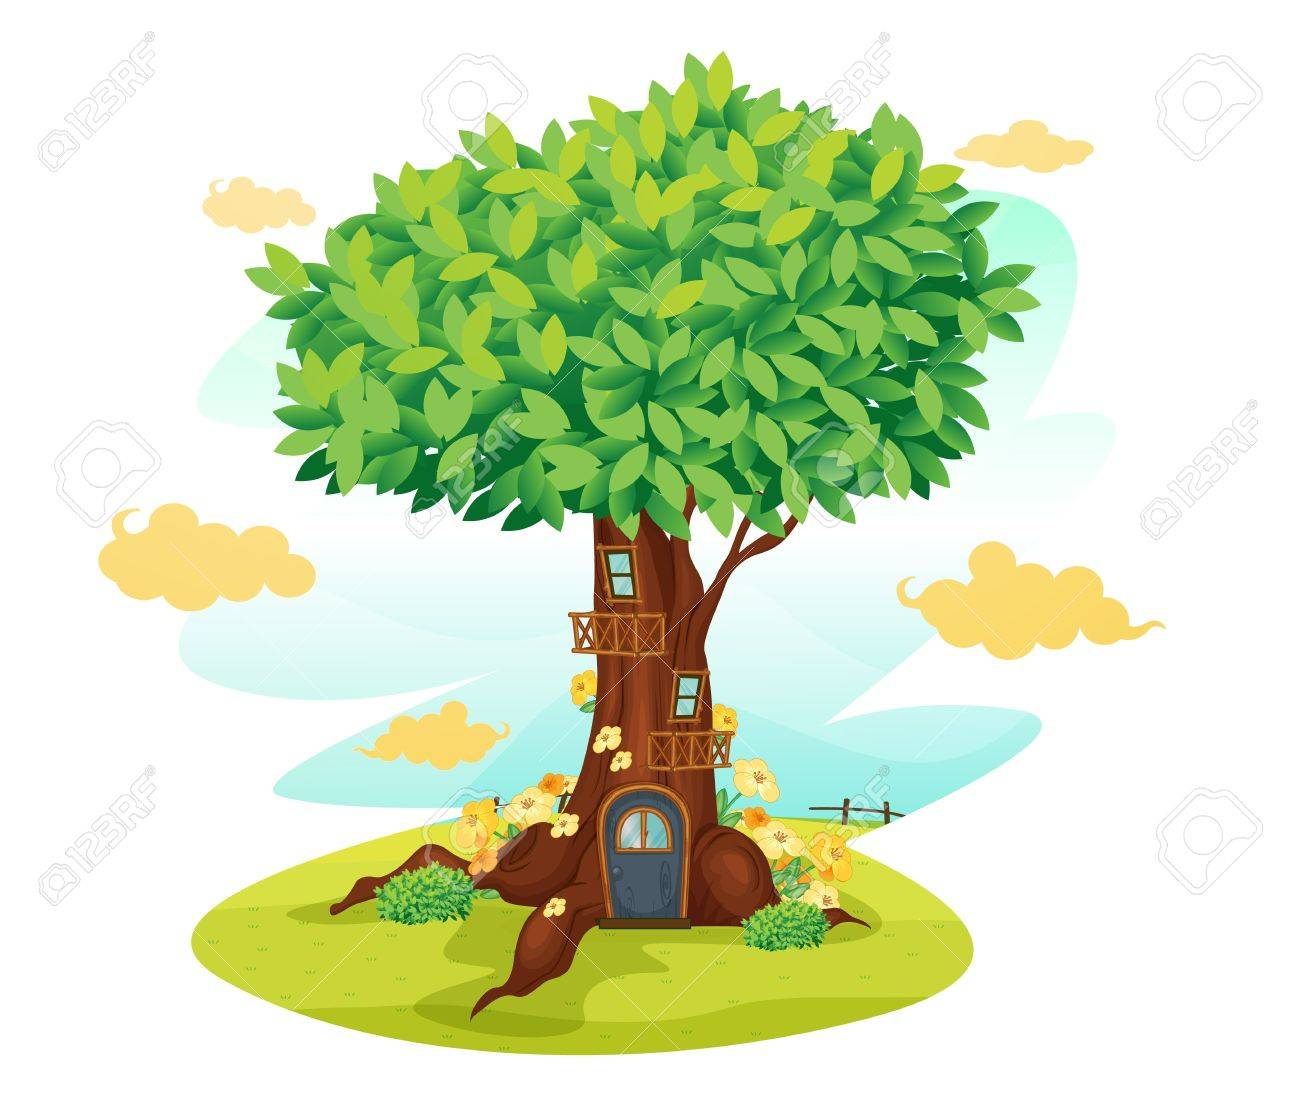 treehouse stock photos royalty free treehouse images and pictures